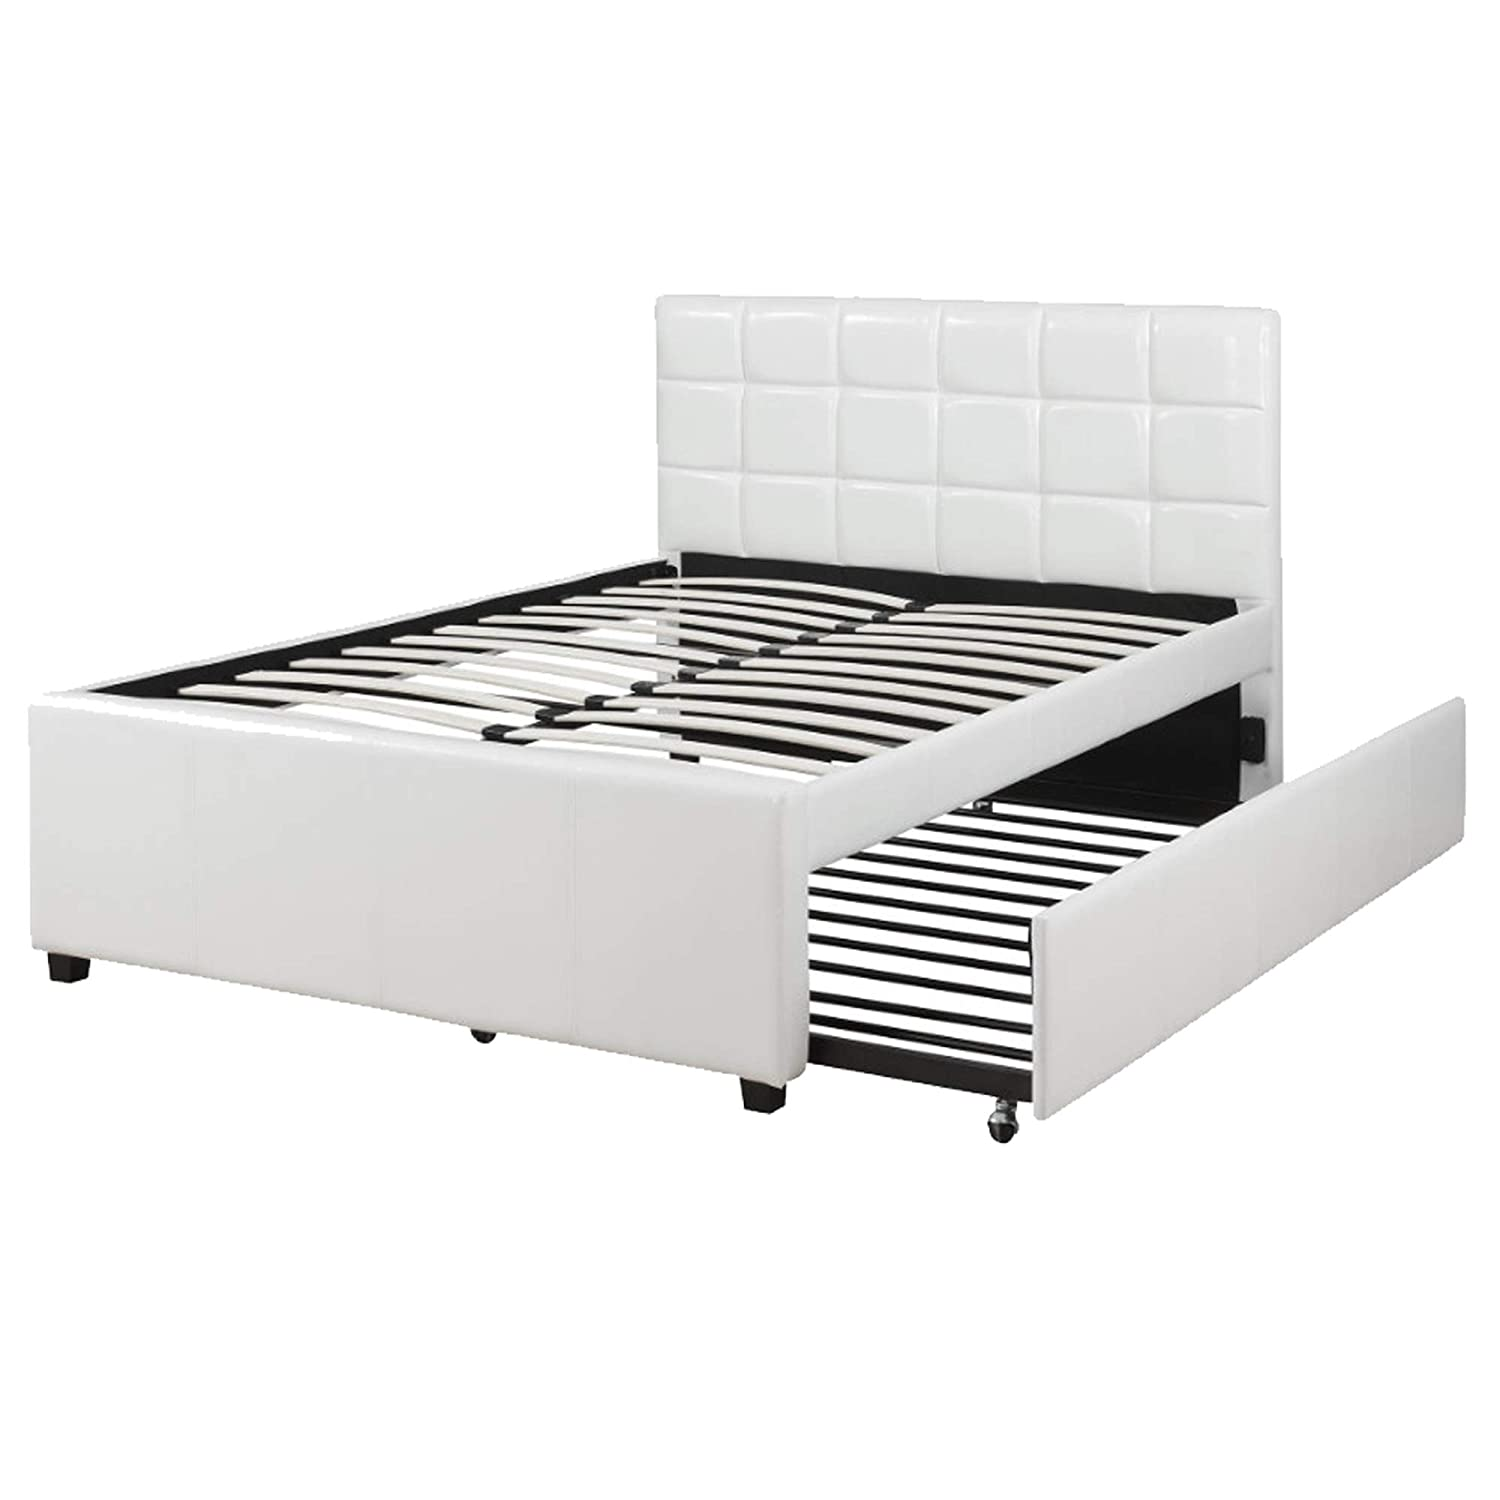 Benjara Gracious Wooden Full Bed With Trundle And SQU Tufted HB, White